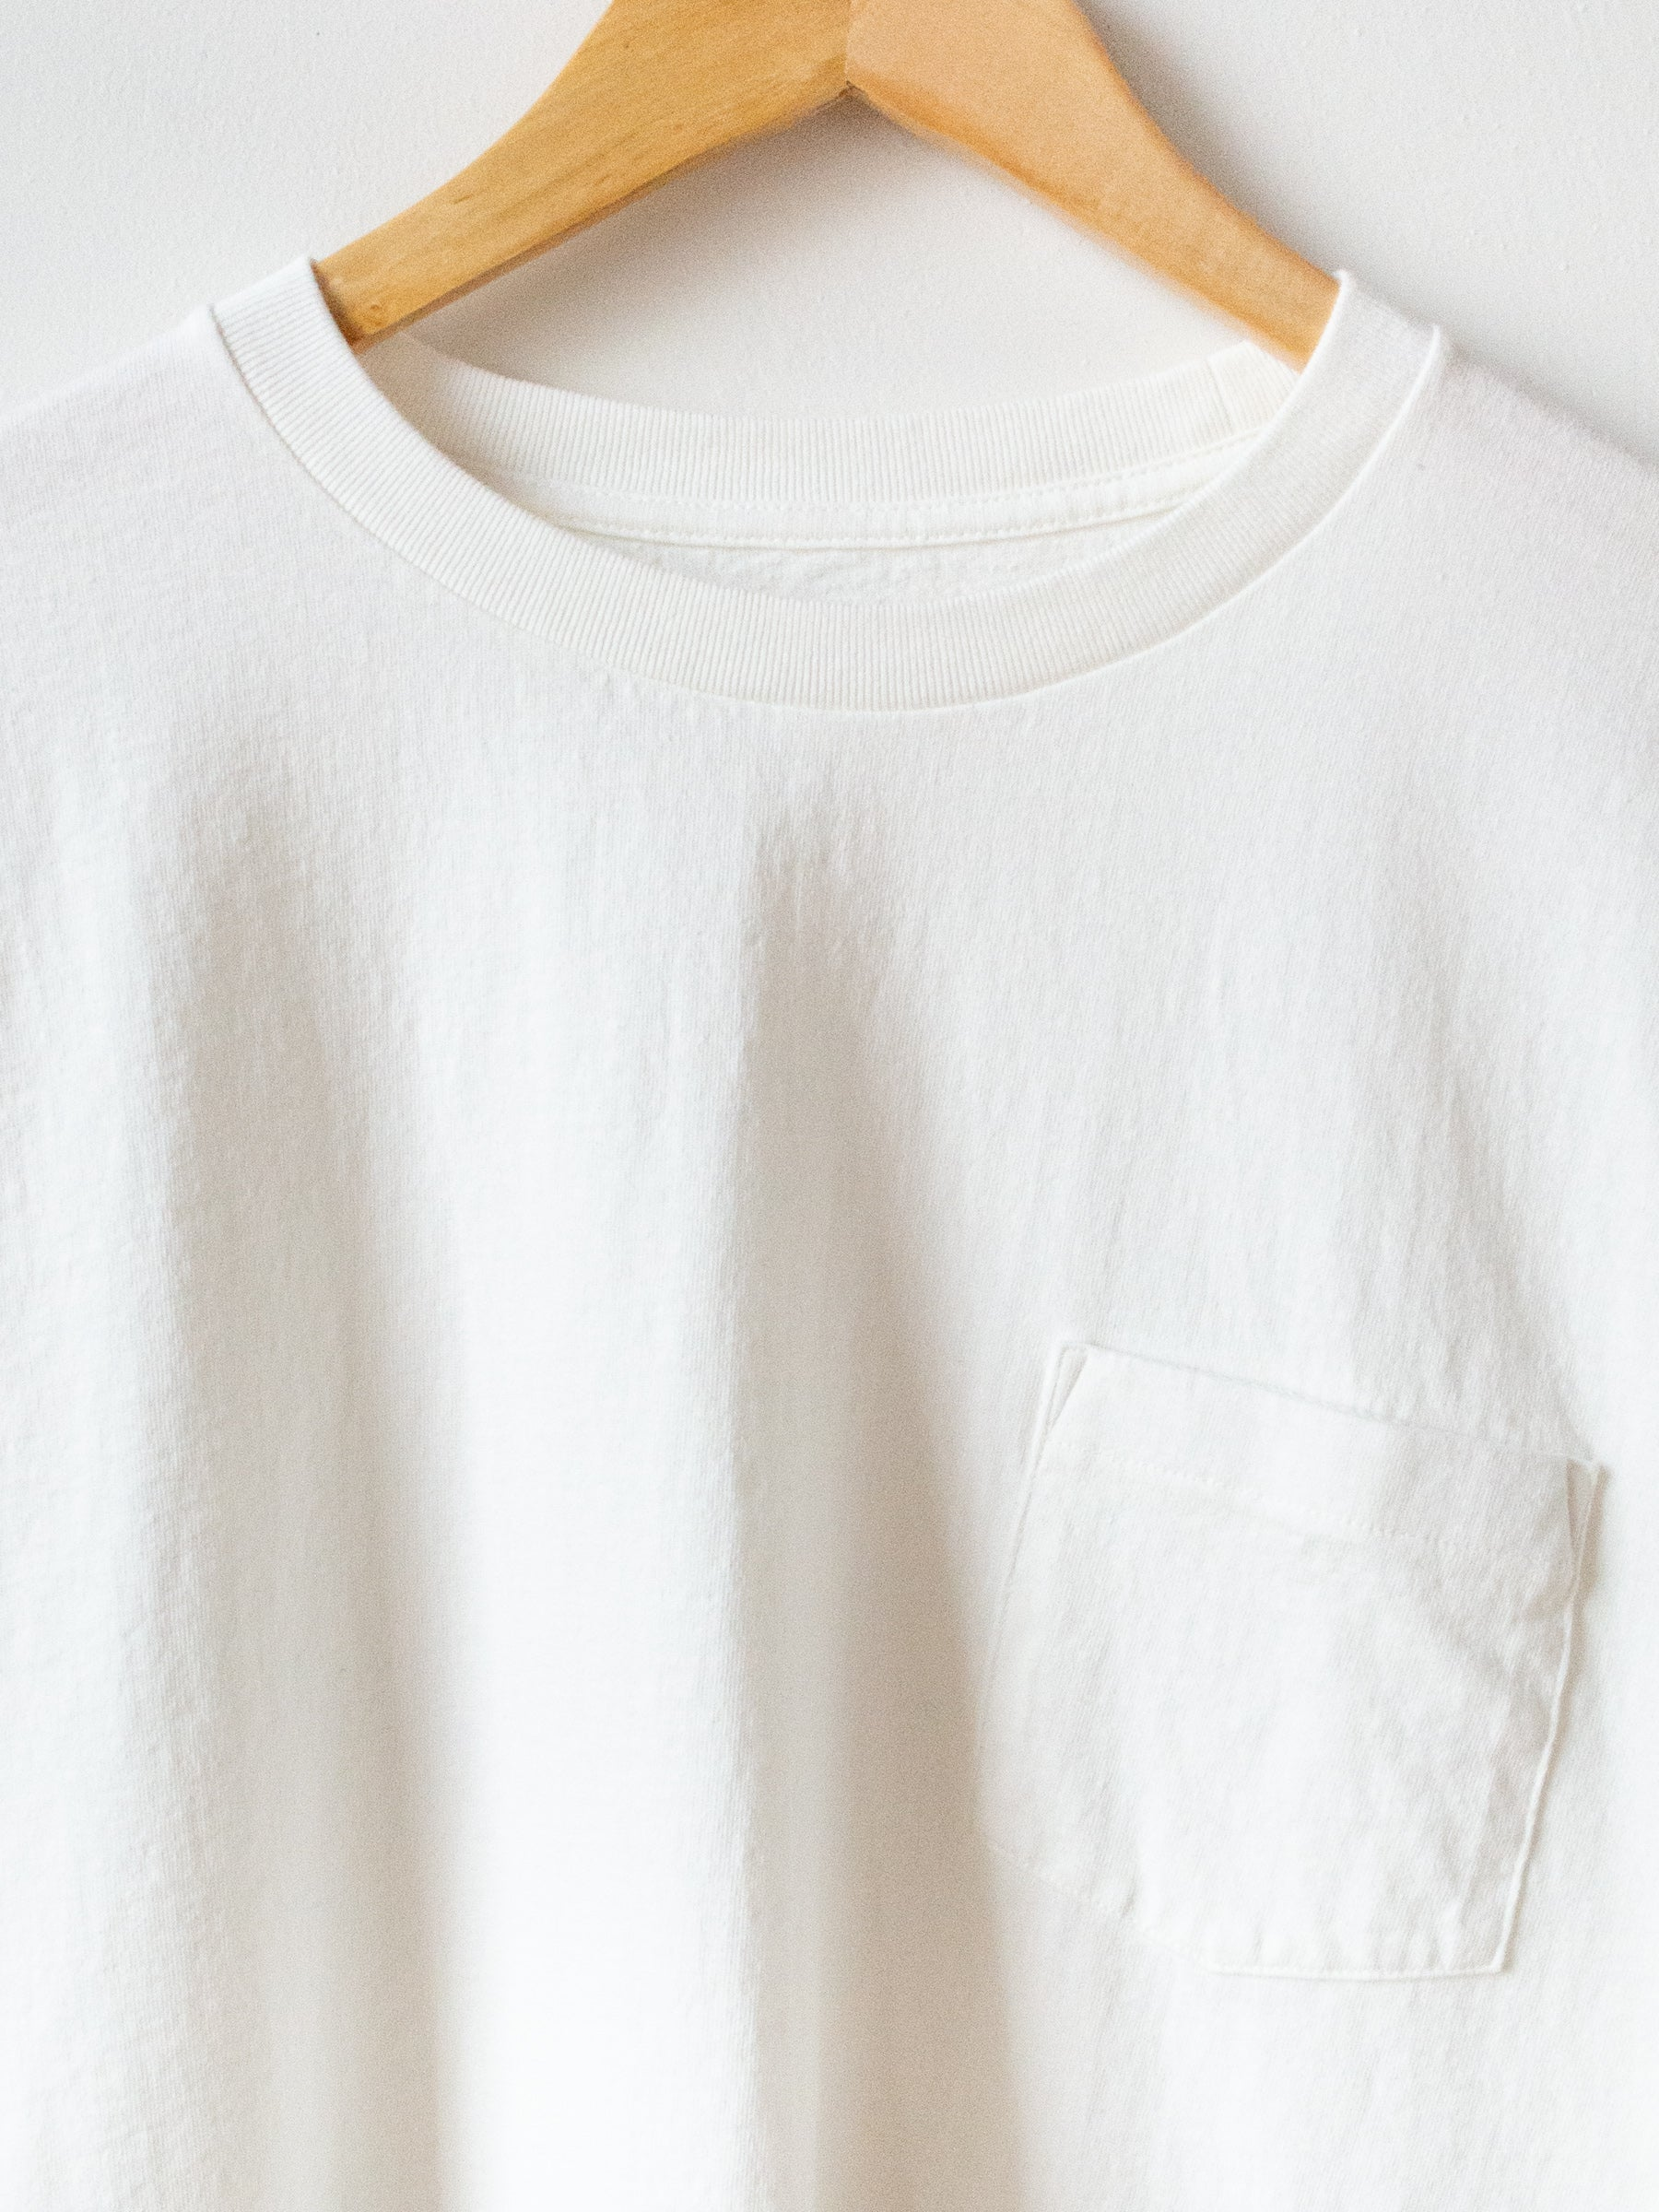 West Coast LS Tee - White x Sand Line